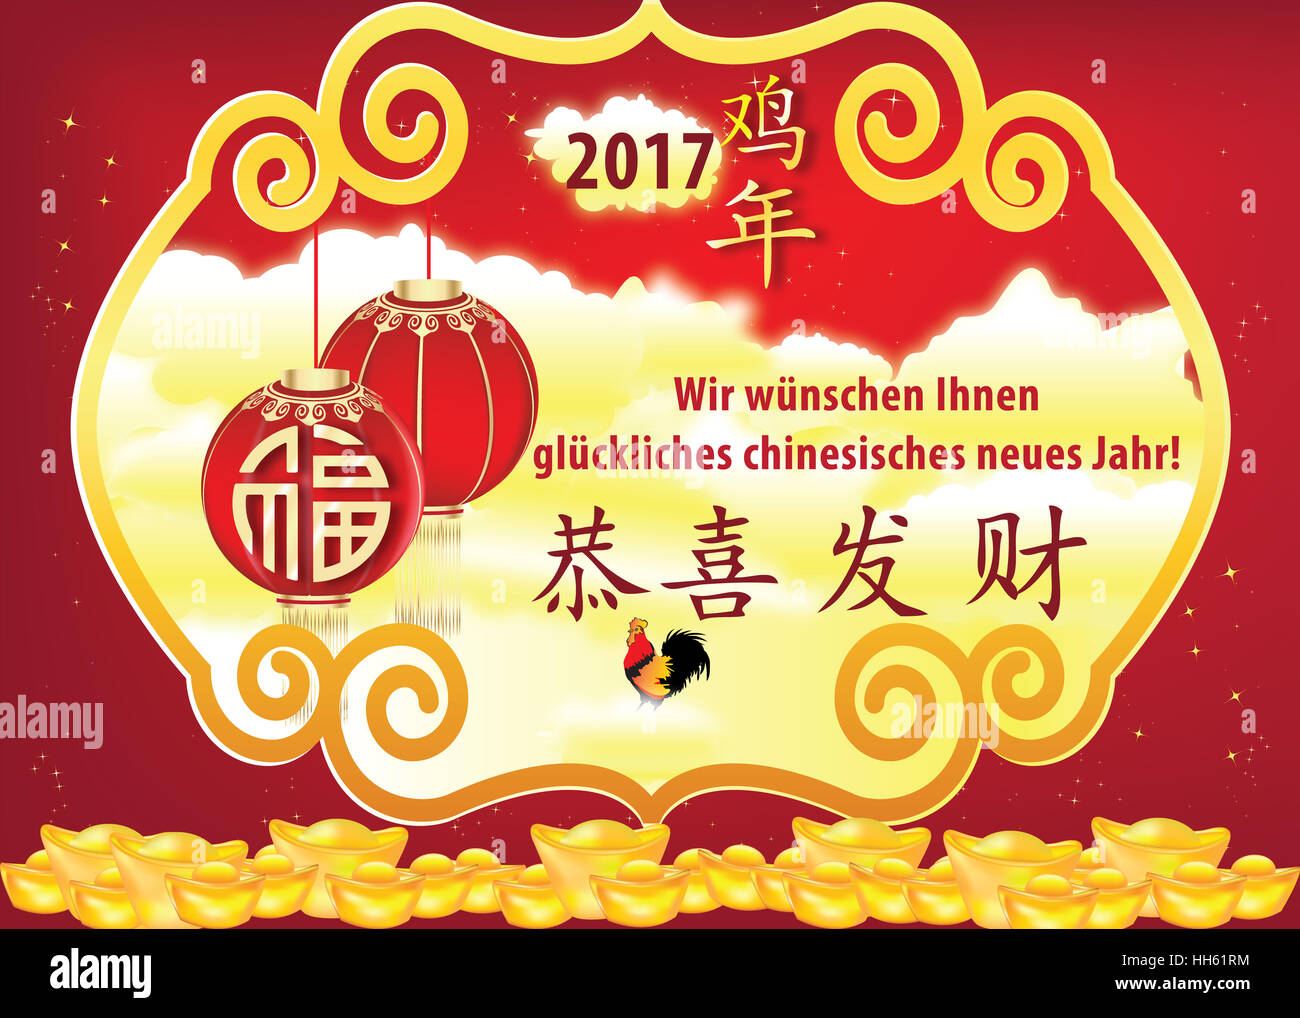 German business greeting card for chinese new year of the rooster german business greeting card for chinese new year of the rooster print colors used contains god of wealth paper lanterns m4hsunfo